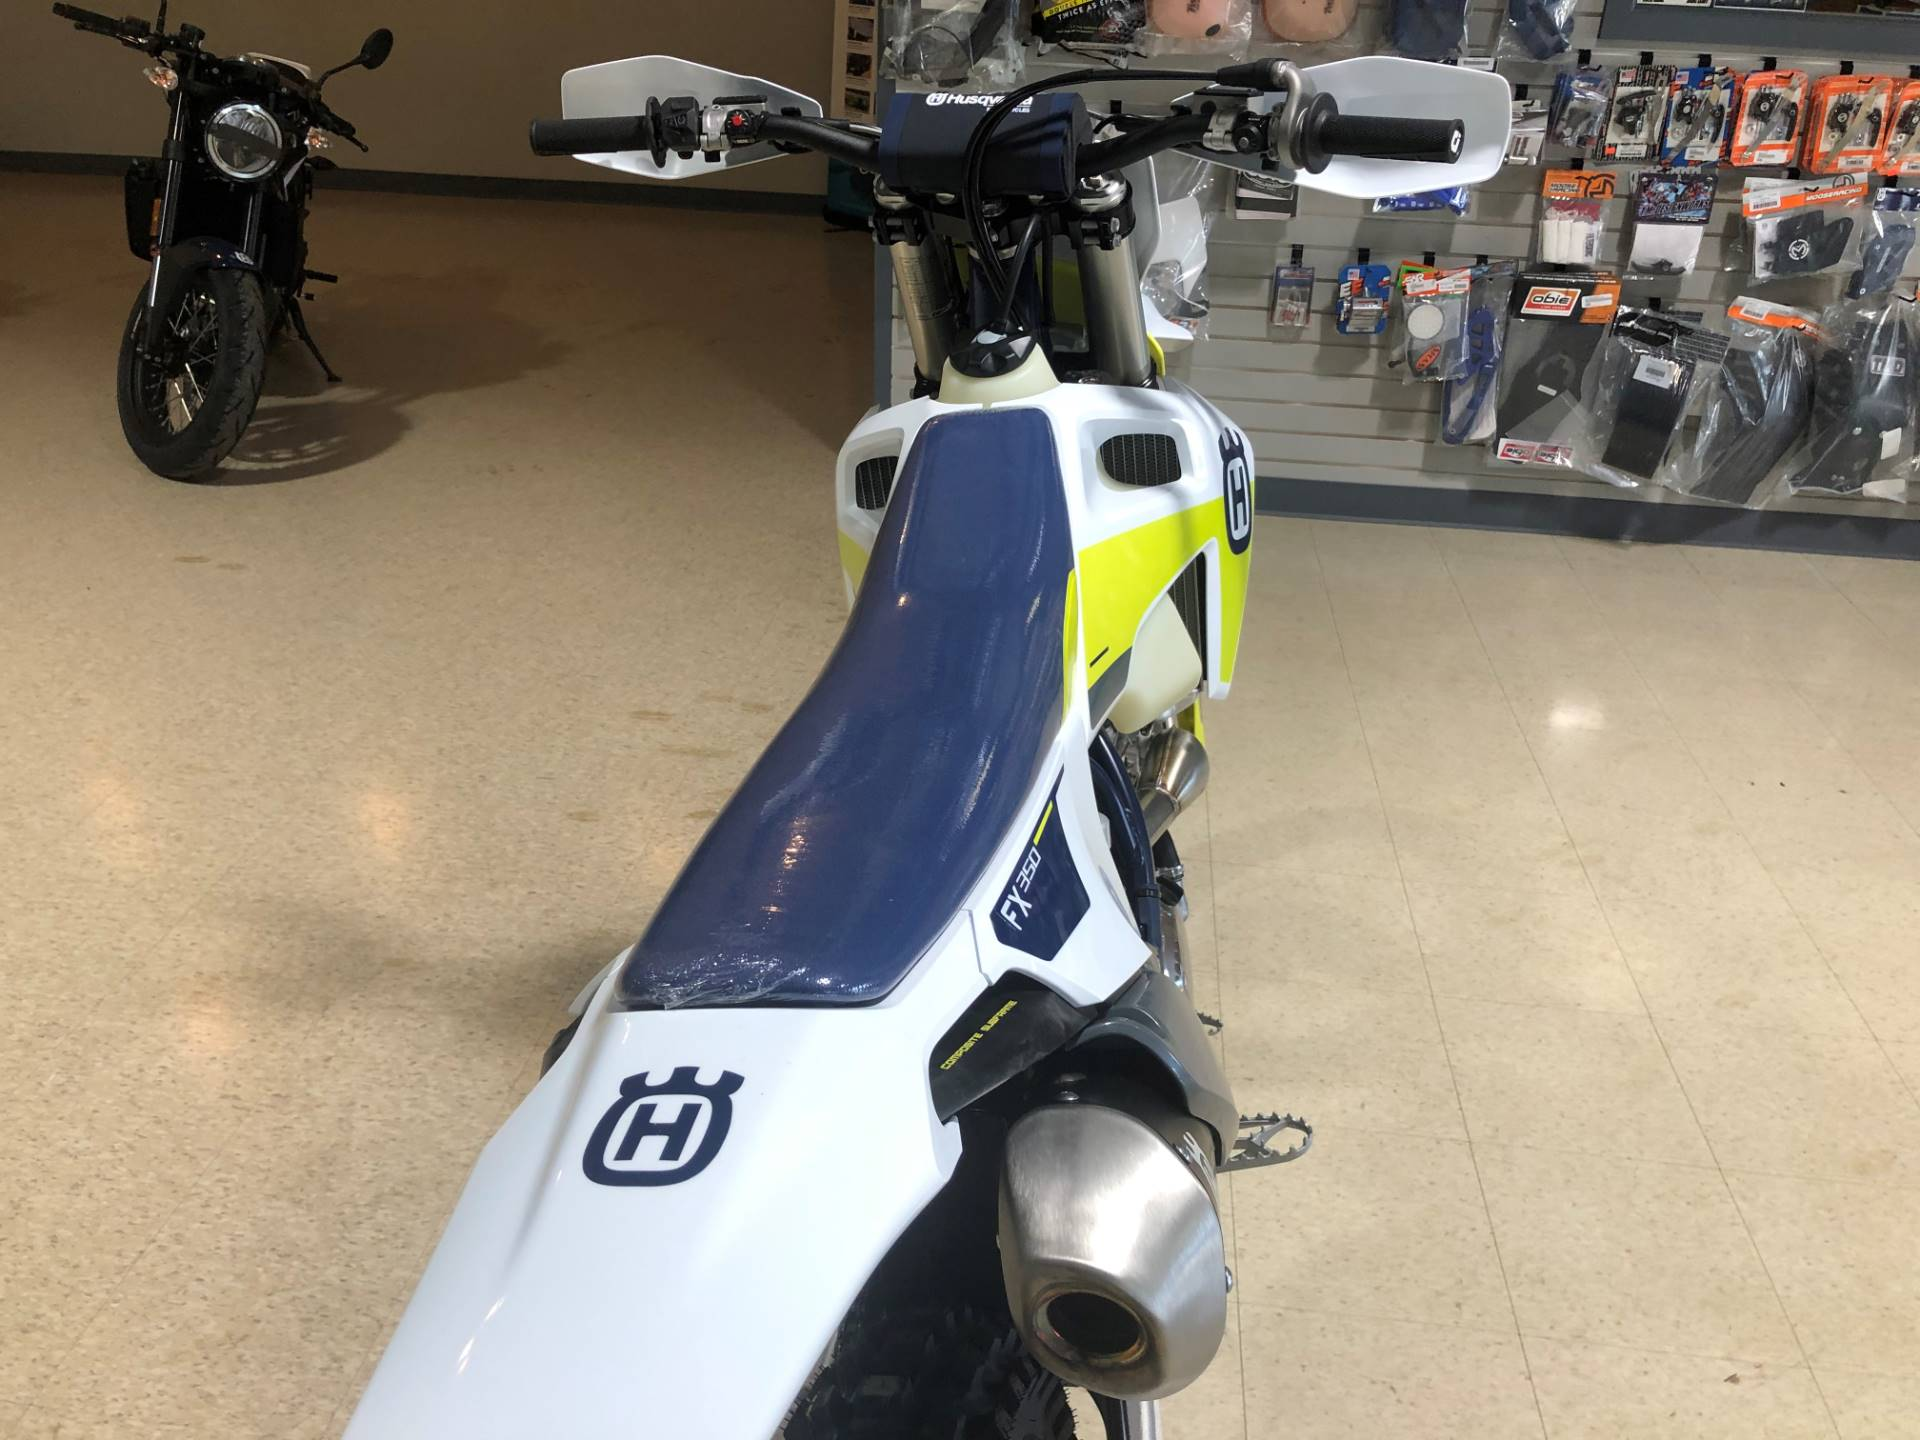 2021 Husqvarna FX 350 in Slovan, Pennsylvania - Photo 4